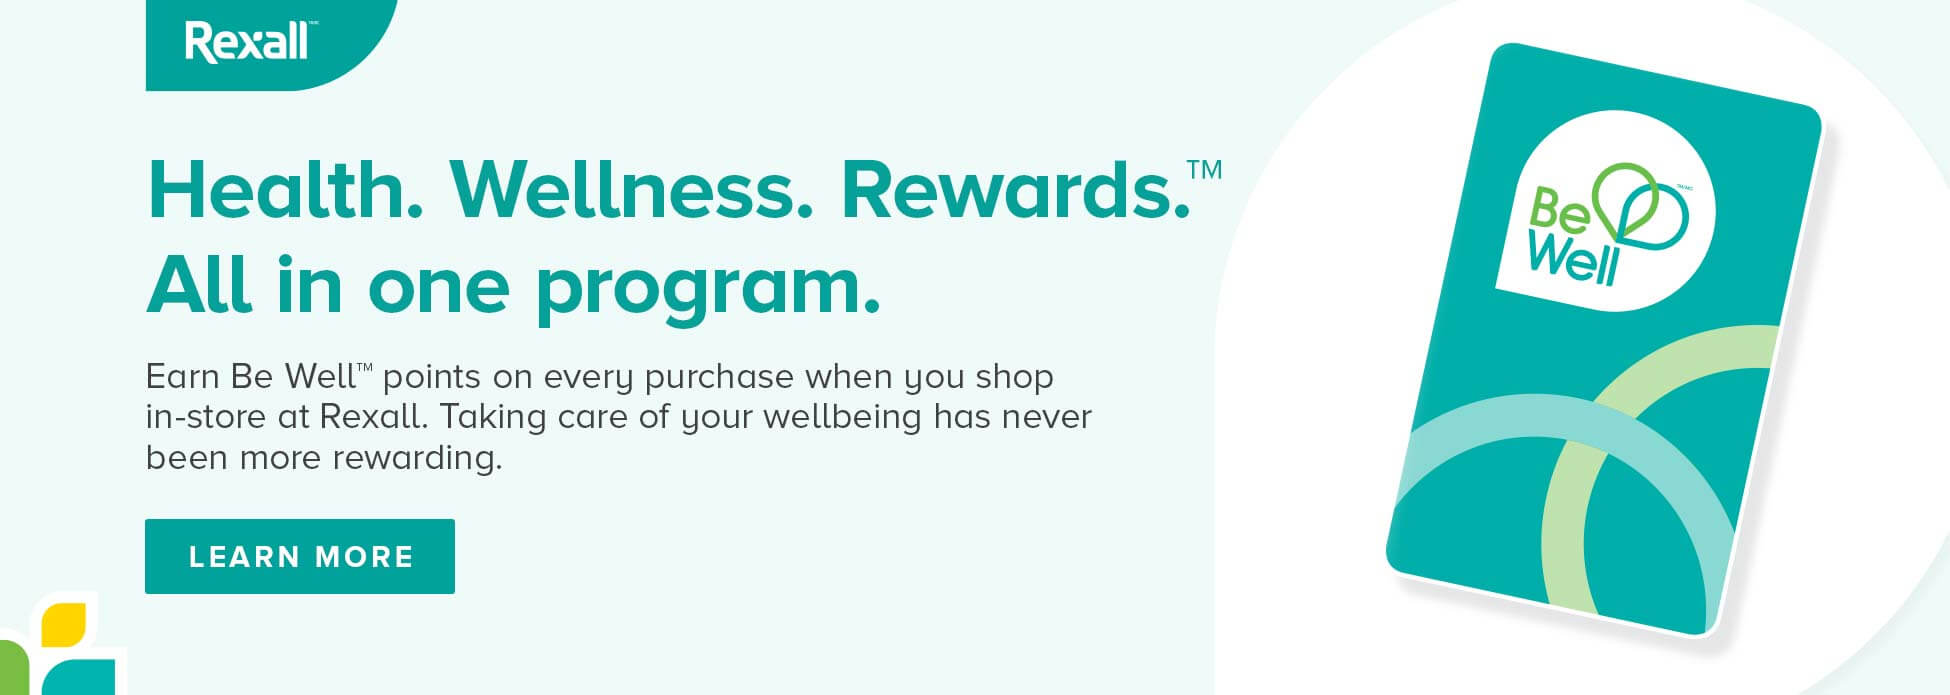 Be Well - Health. Wellness. Rewards.